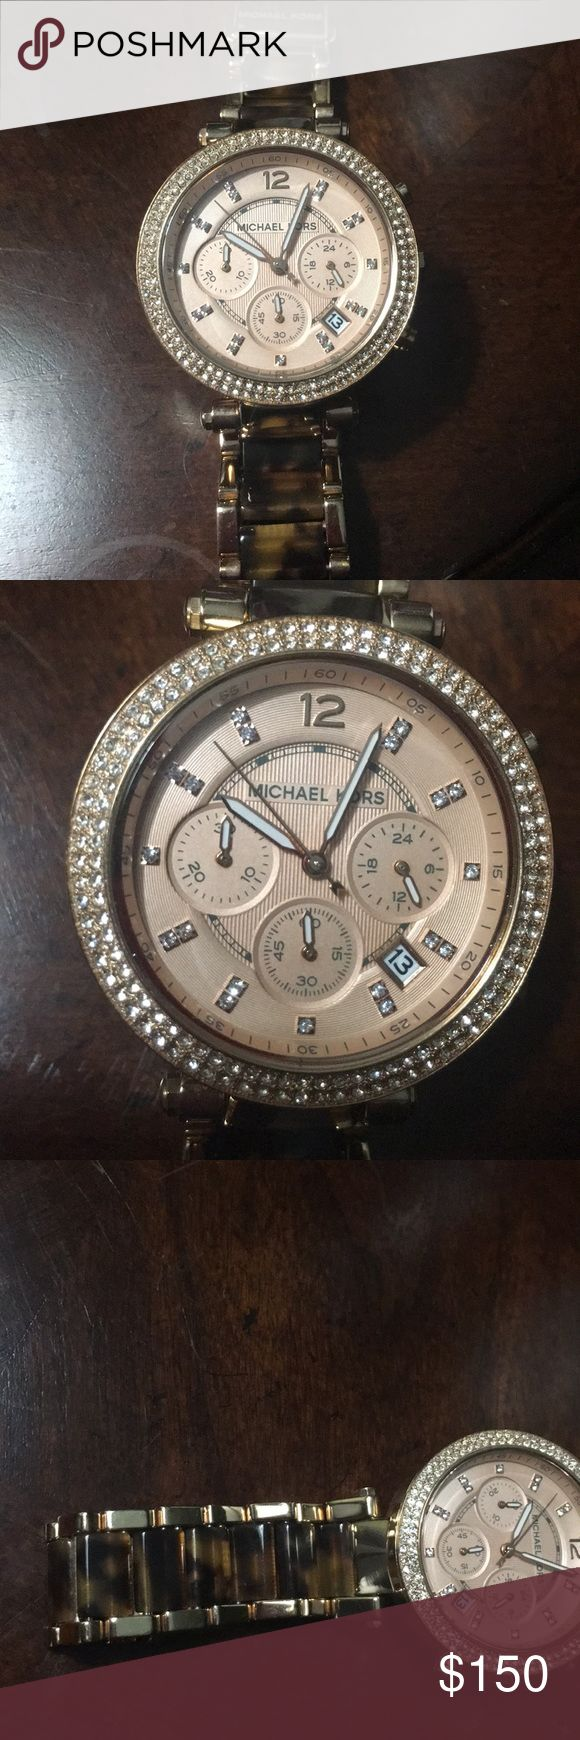 MK-MICHAEL KORS ROSE GOLD AND CRYSTAL WATCH MICHAEL KORS- ROSE GOLD TORTOISE SHELL WATCH WITH SPARKLING CRYSTALS FOR EACH HOUR AND AROUND THE FACE OF THE CLOCK. ABSOLUTELY STUNNING! Needs Battery. Retails for $250, don't miss this DEAL for only $150.00. DONT MISS THIS DEAL. . Michael Kors Other